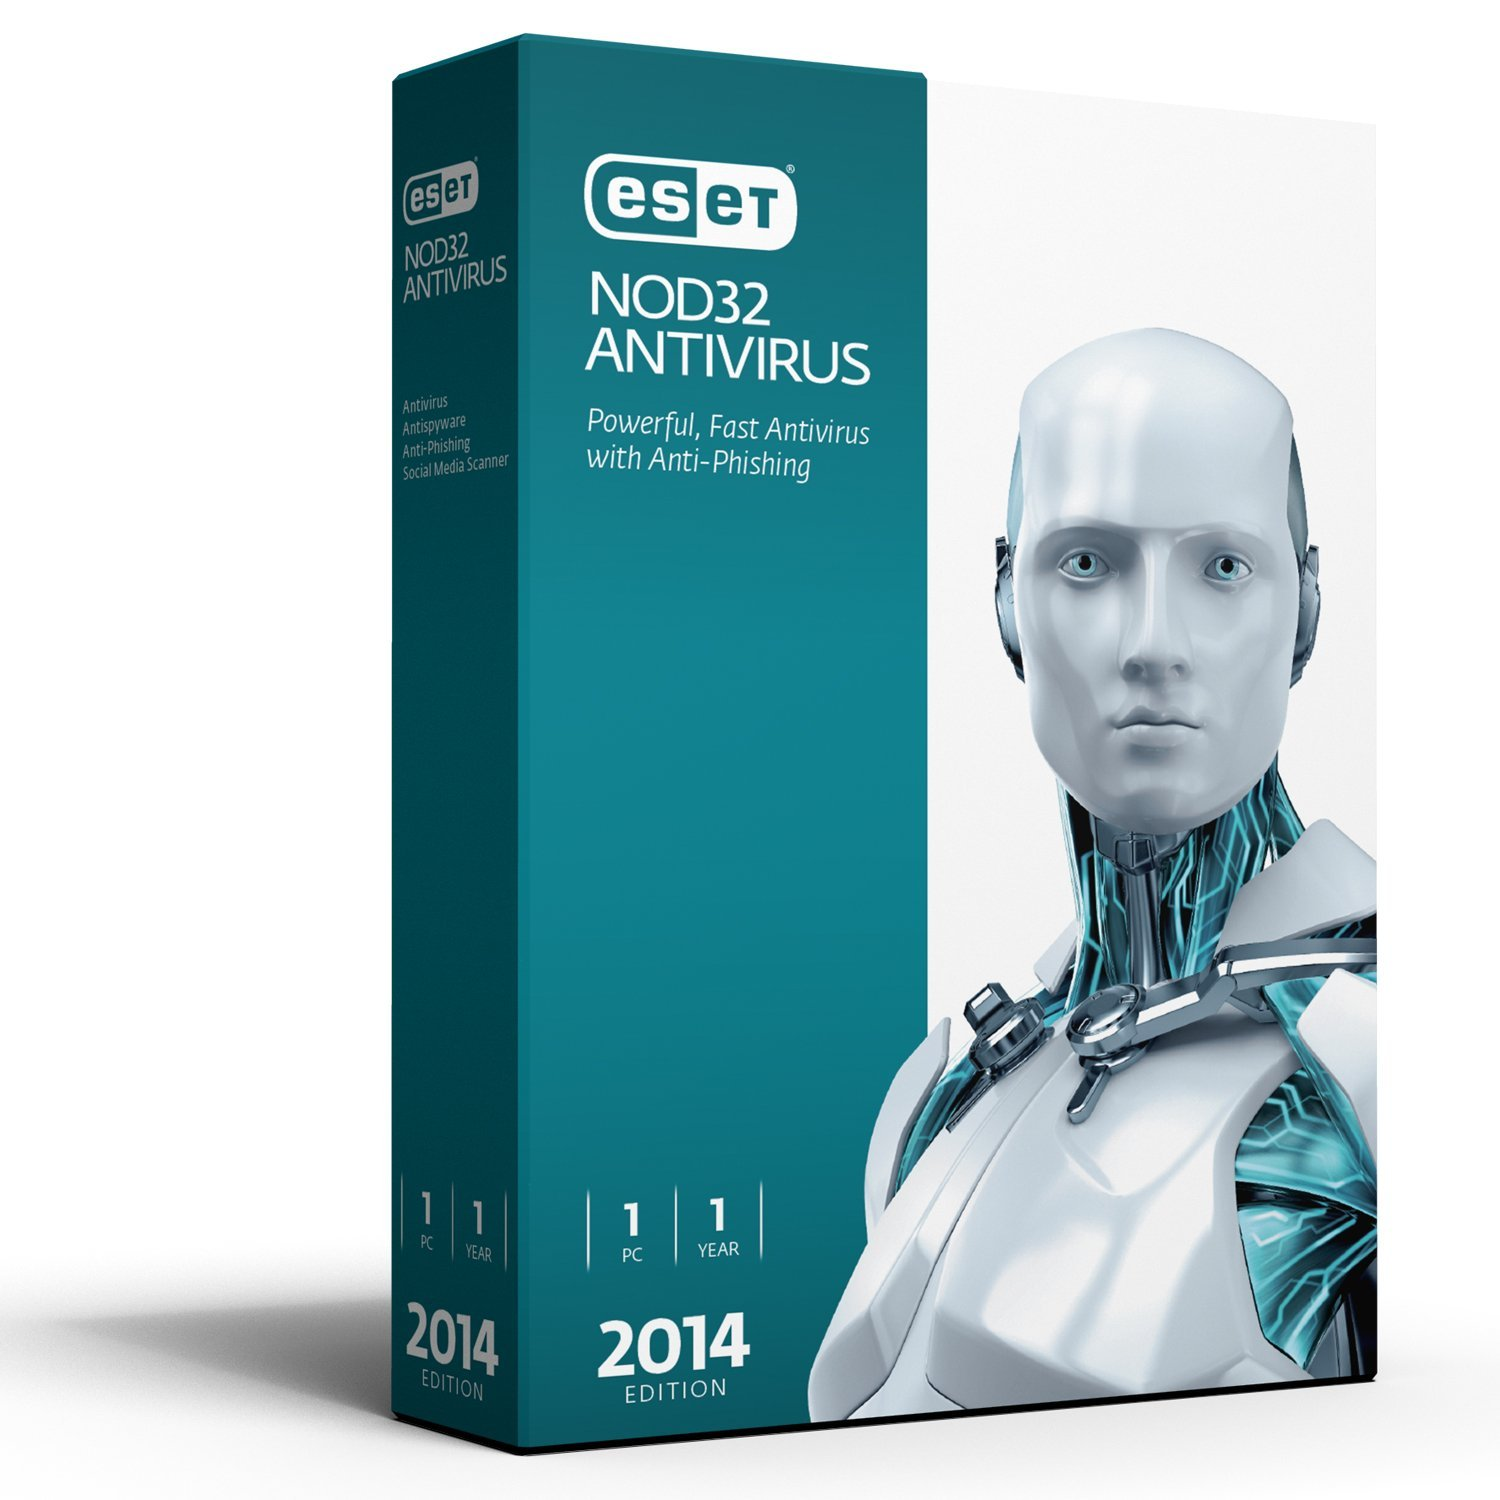 ESET and Education Antivirus